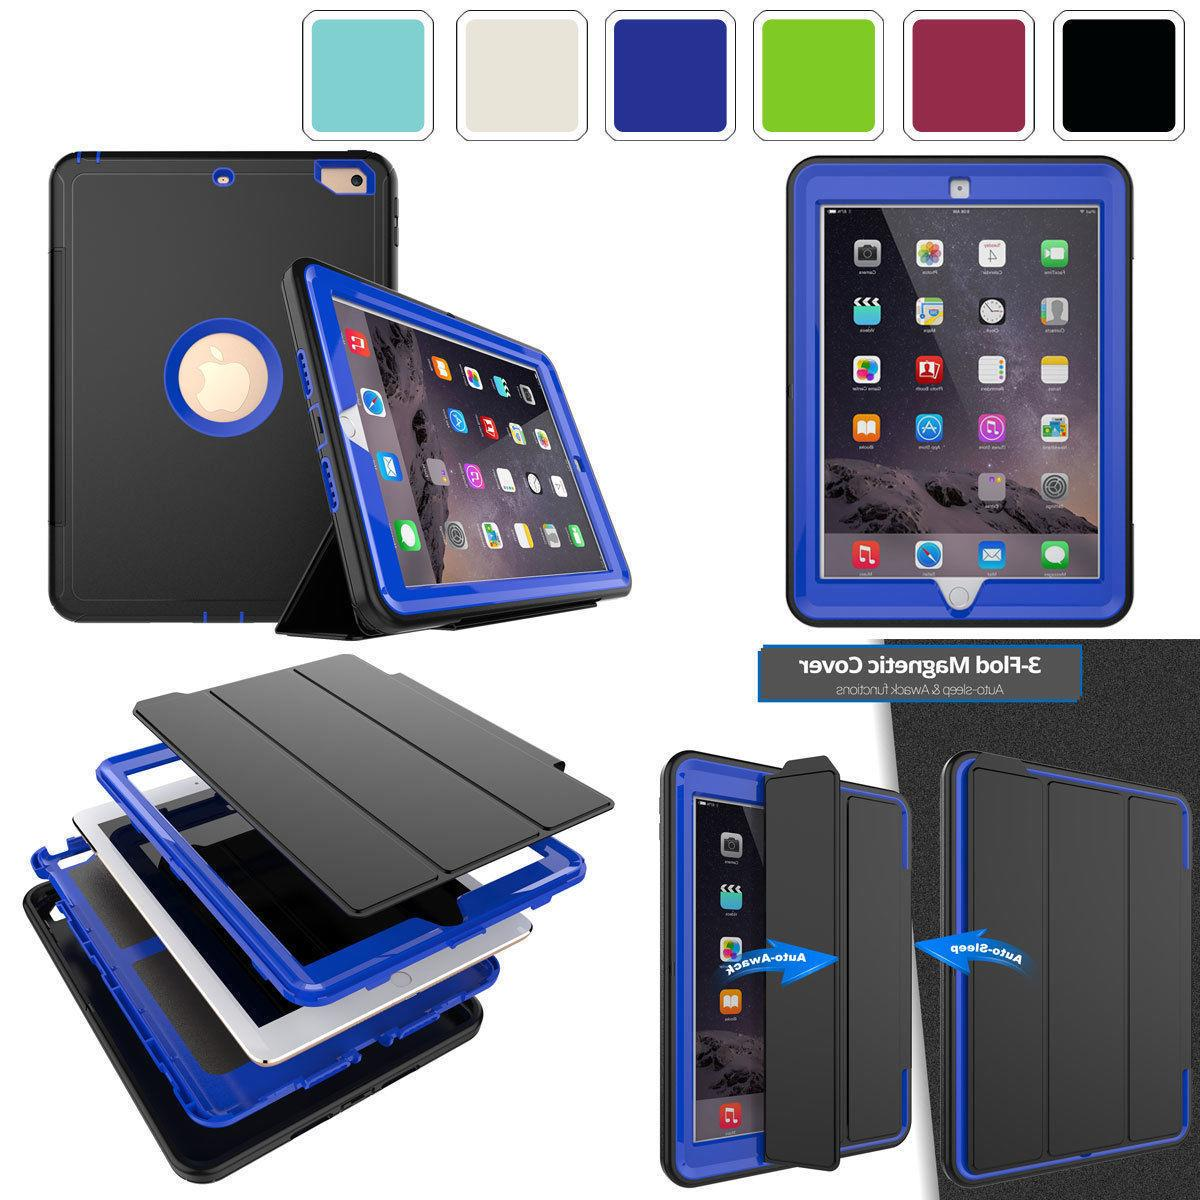 Heavy 3 in 1 Shock PC Case For iPad